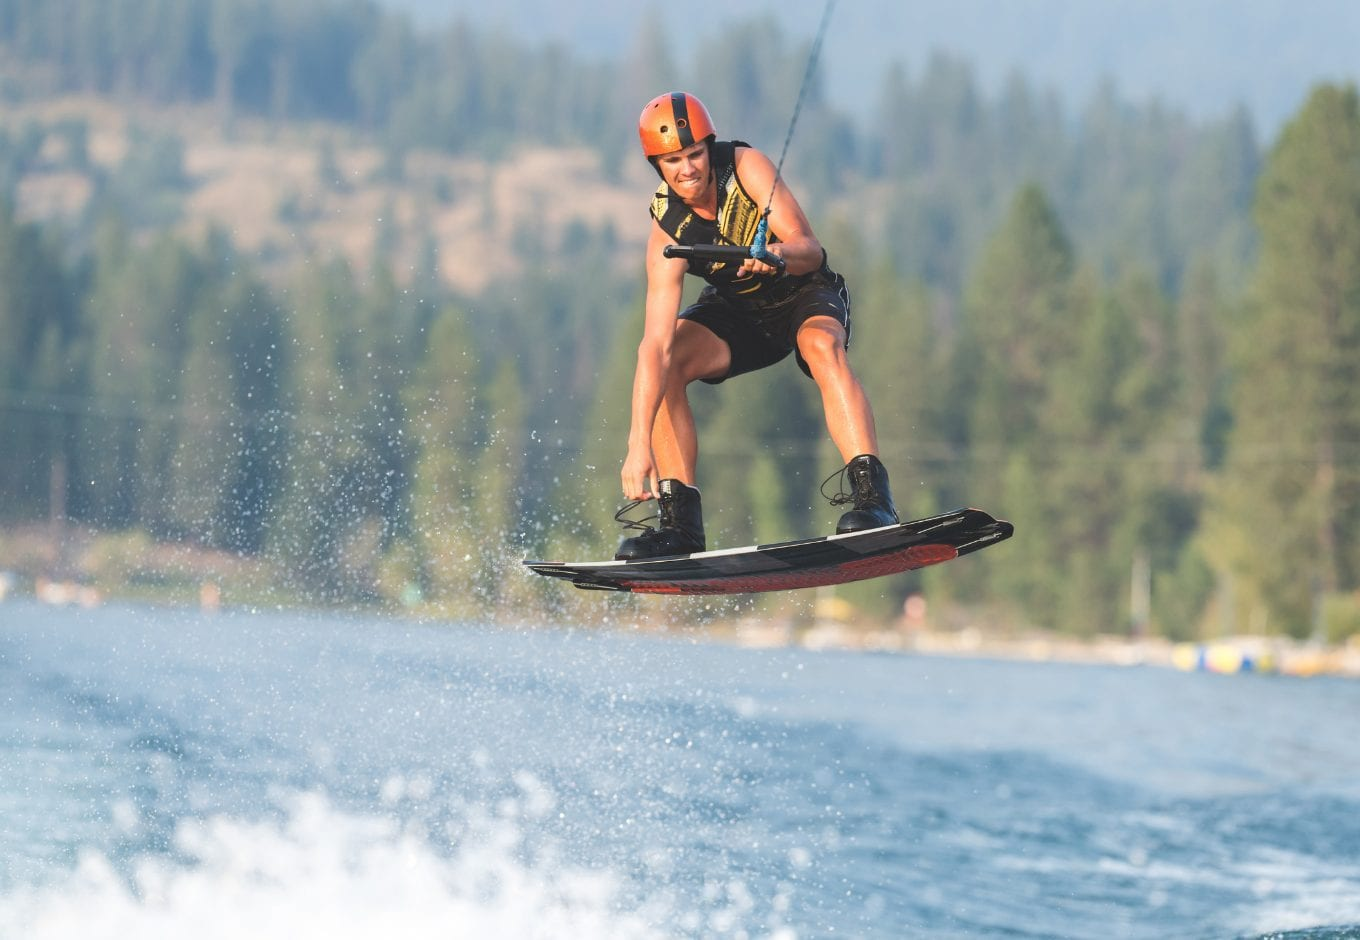 Woman wakeboarding on a lake.